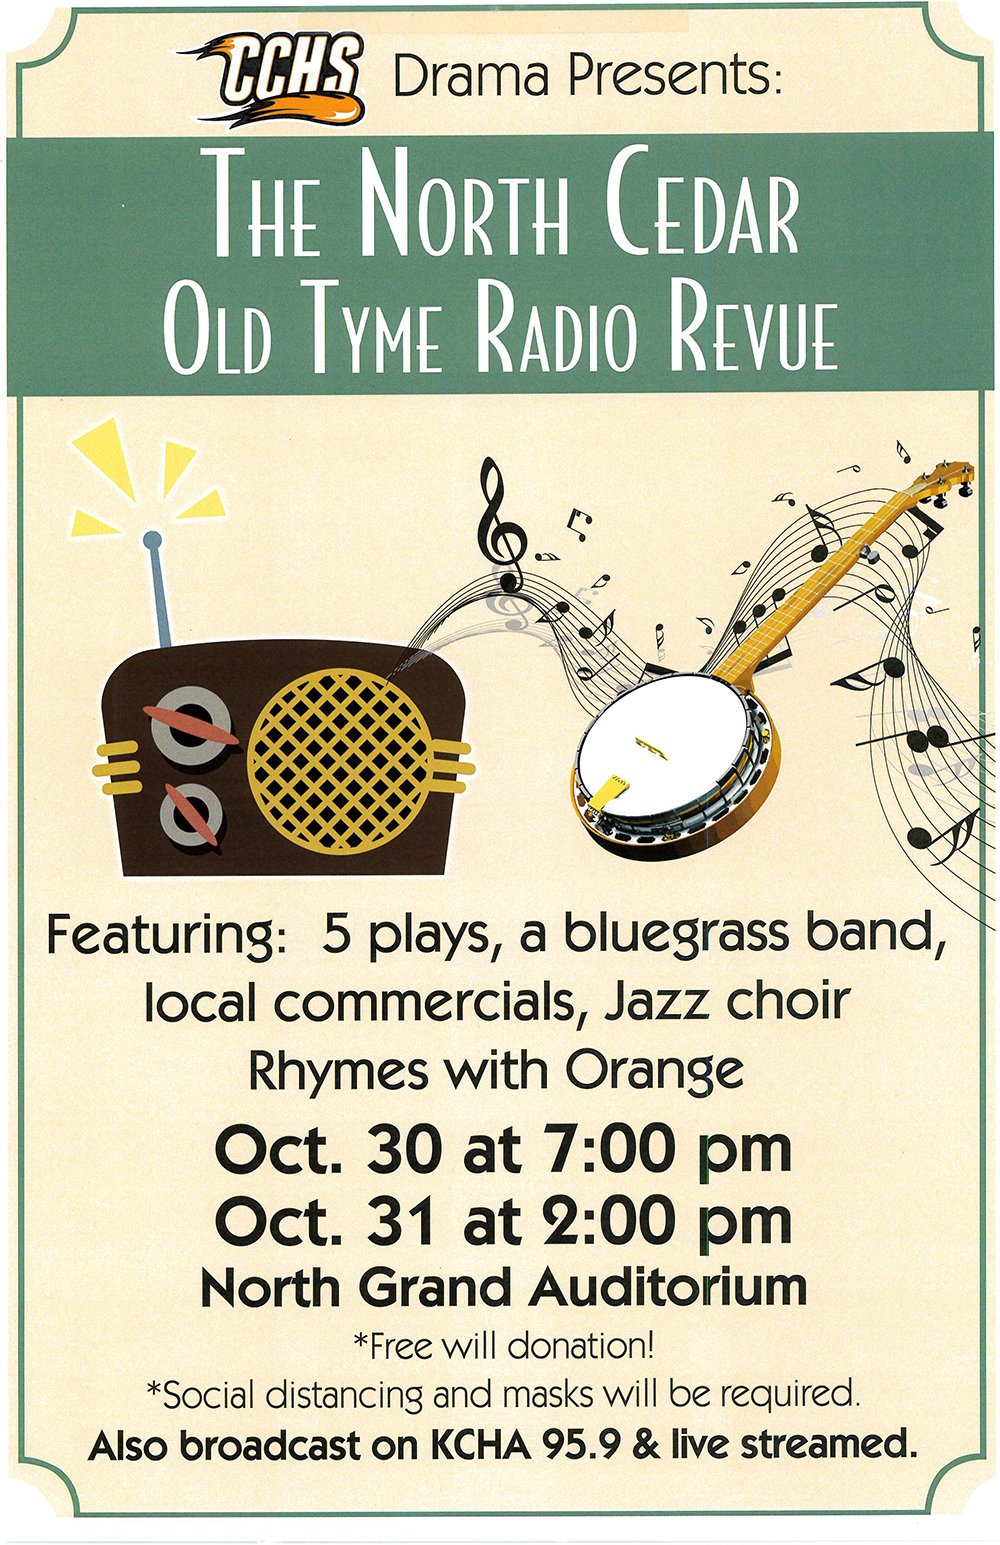 The North Cedar Old Tyme Radio Revue